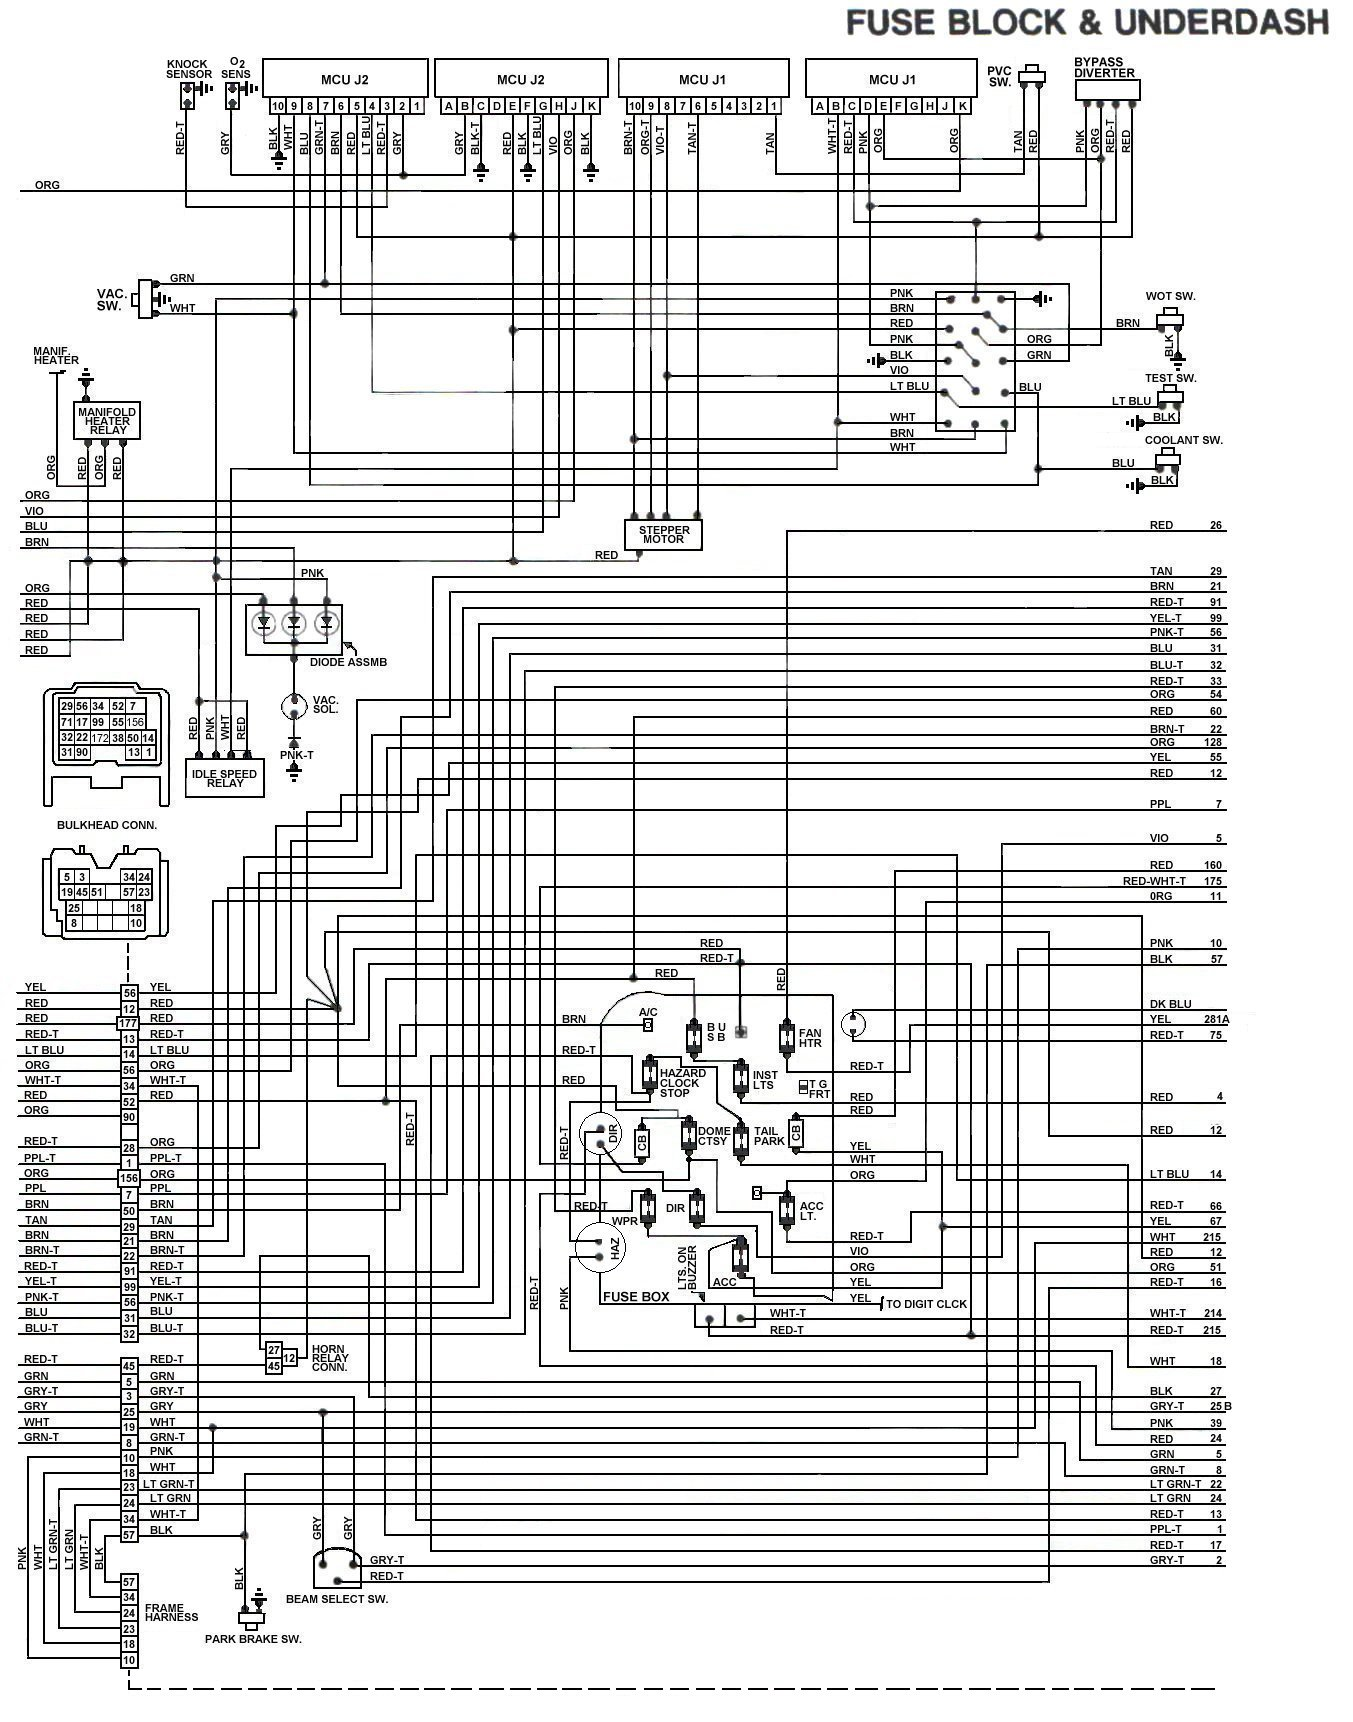 83_FSJ_WiringDiagram_FuseBlock Underdash tom 'oljeep' collins fsj wiring page 1989 Chevy 1500 Wiring Diagram at crackthecode.co